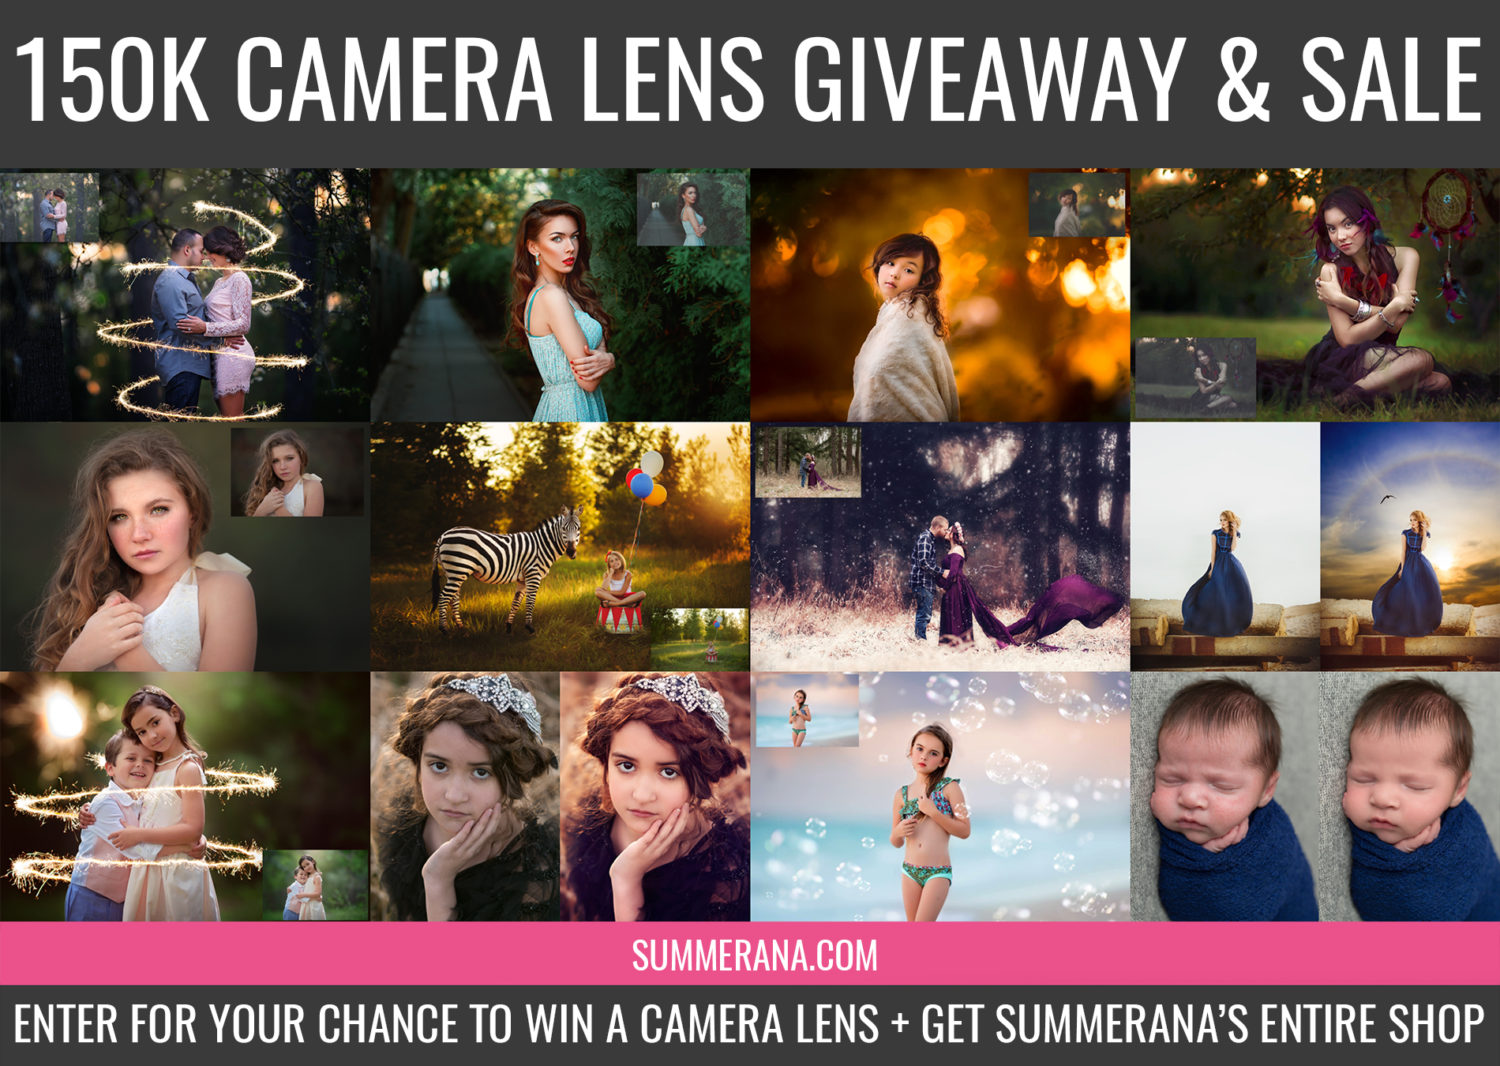 summeranan-photoshop-actions-for-photographers-150K-camera-lens-giveaway-and-sale